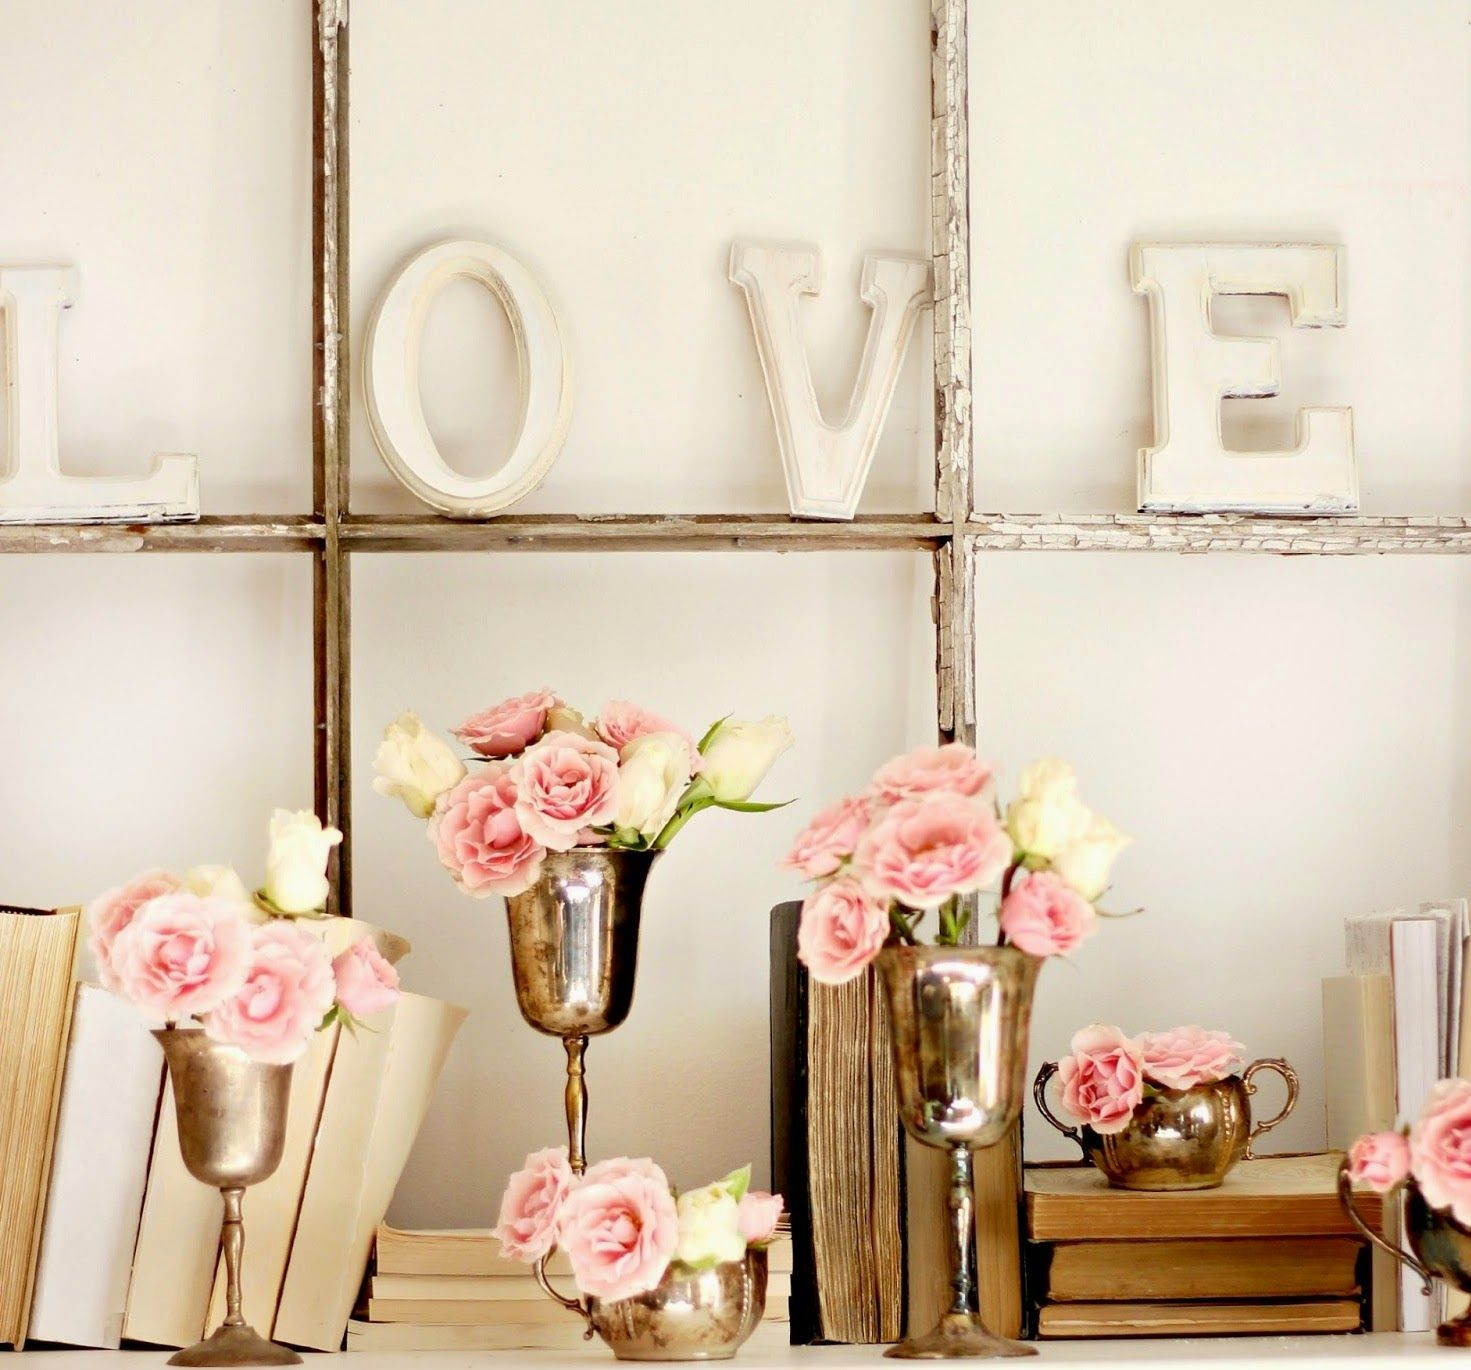 Stylish Vintage home decor, furniture and accessories | *Creative ...